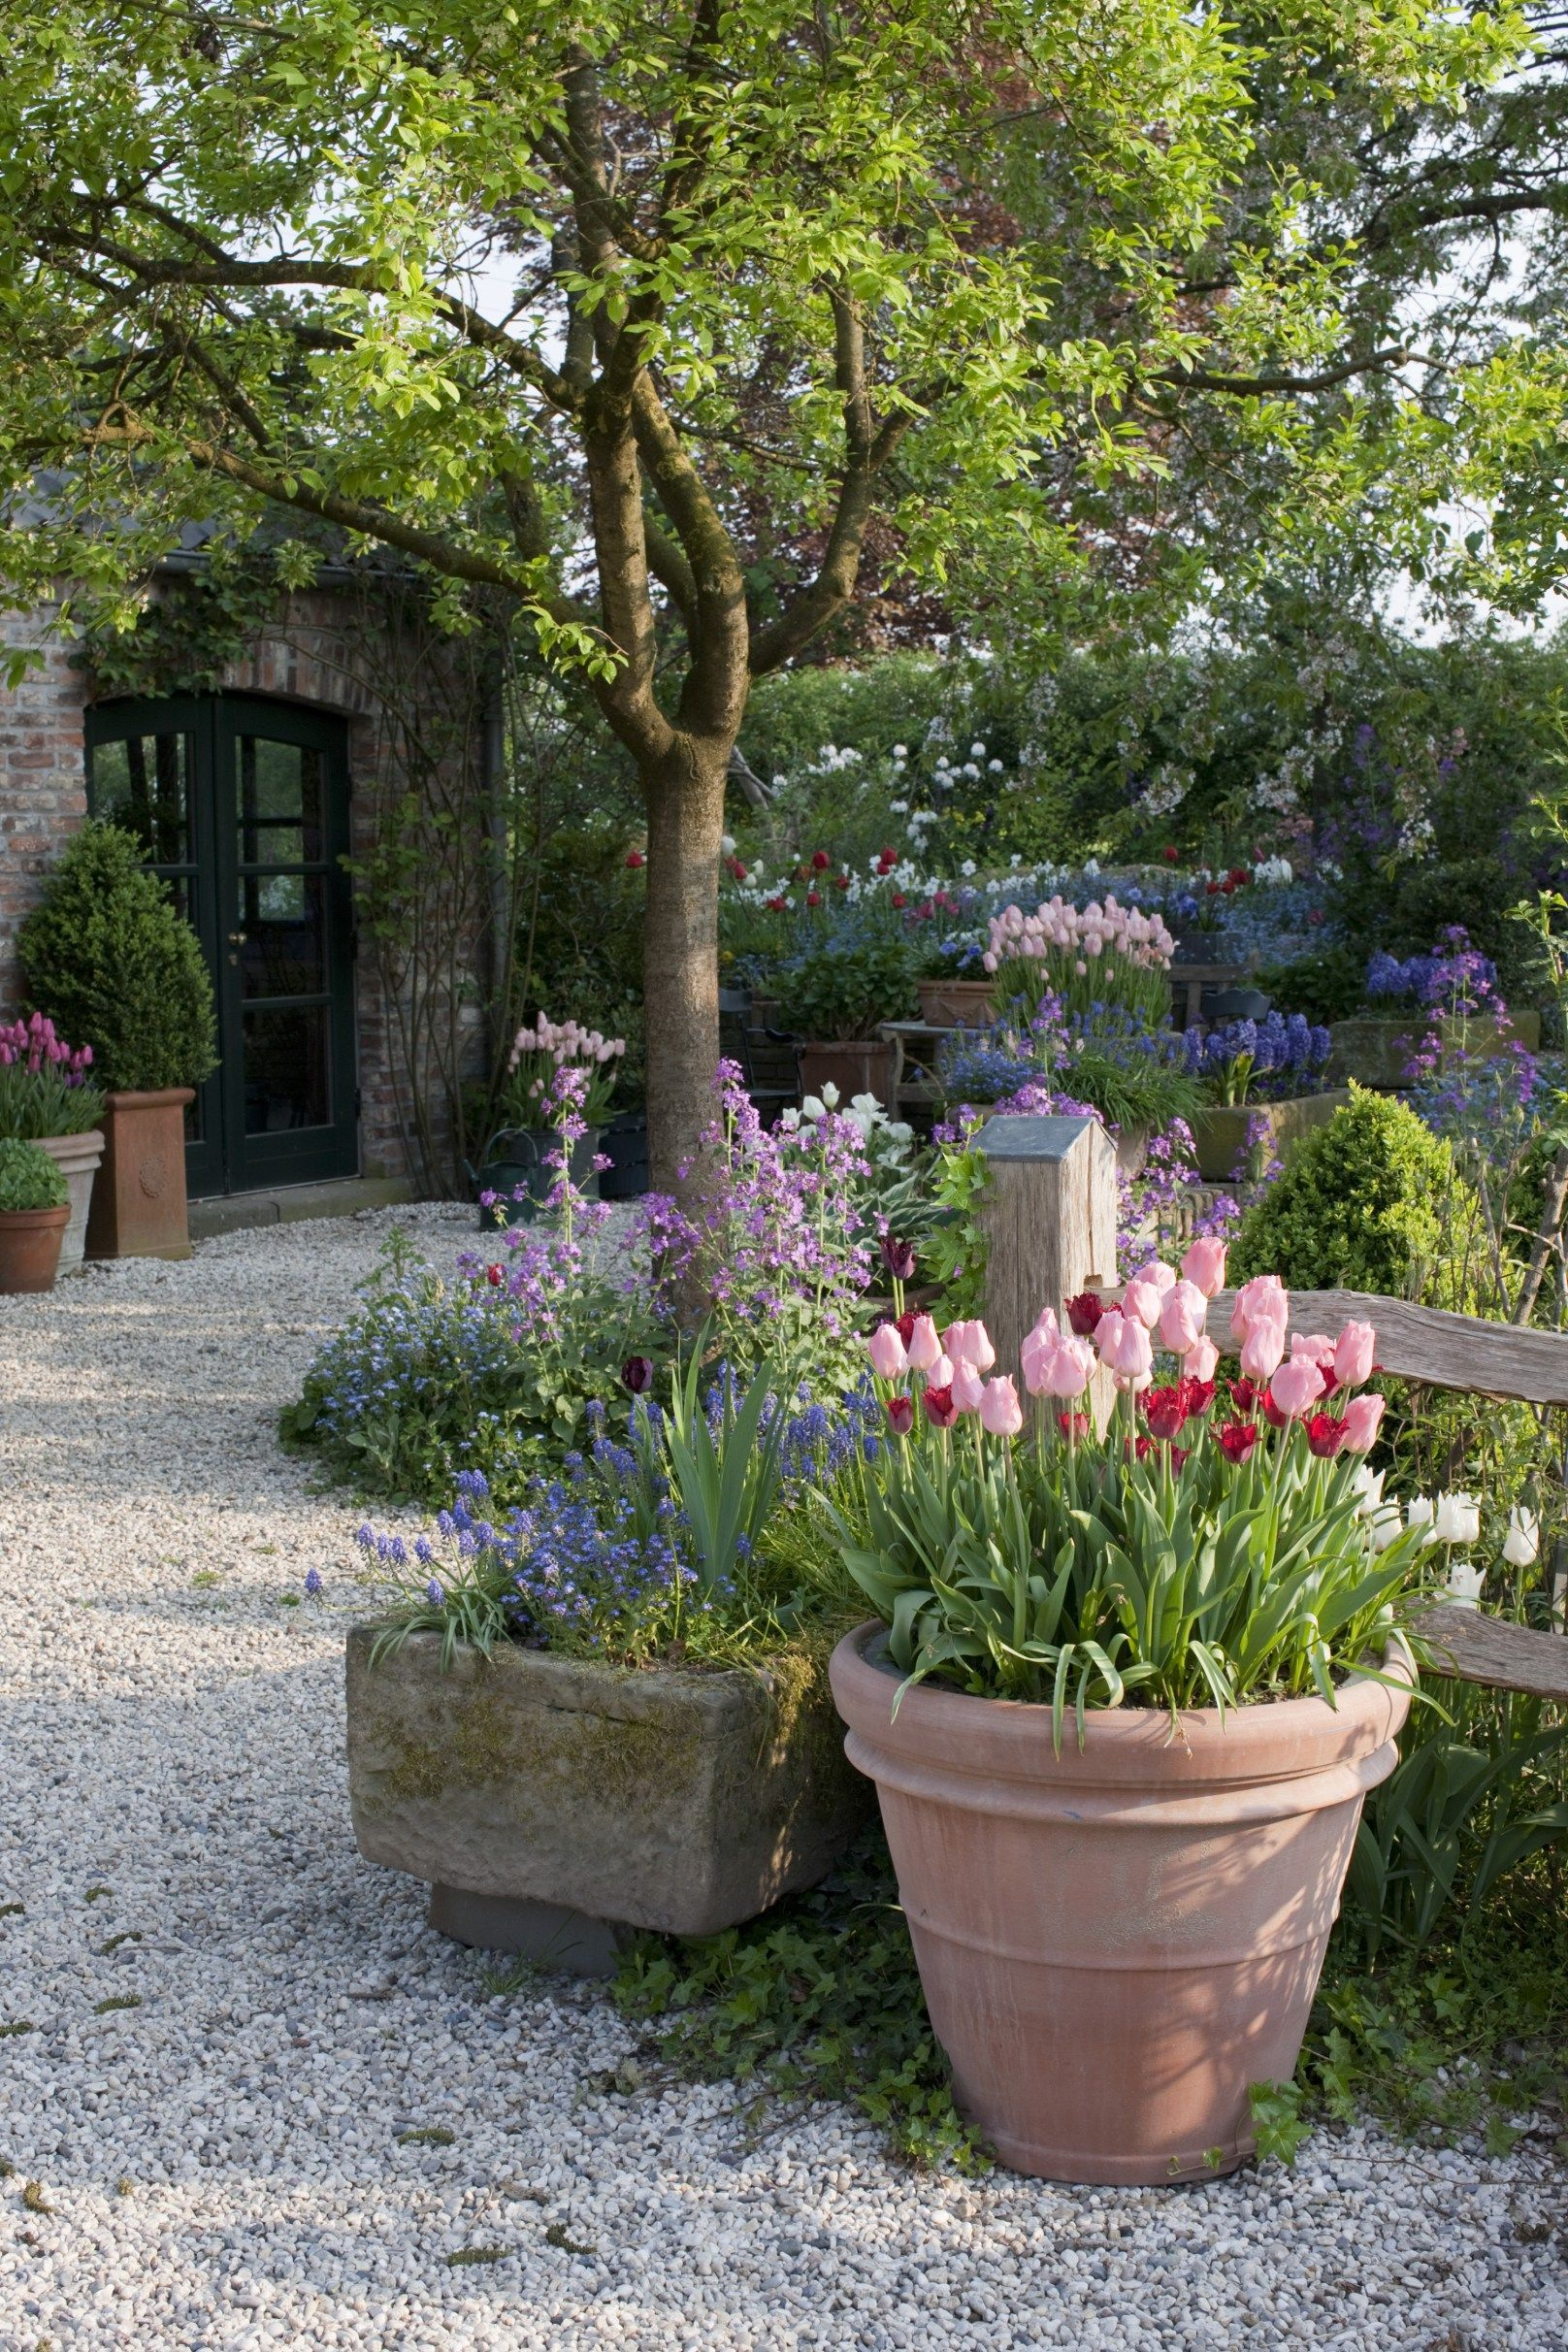 Photo of Onion flowers in pots under cherry trees (Tulipa, Apricot Beaut